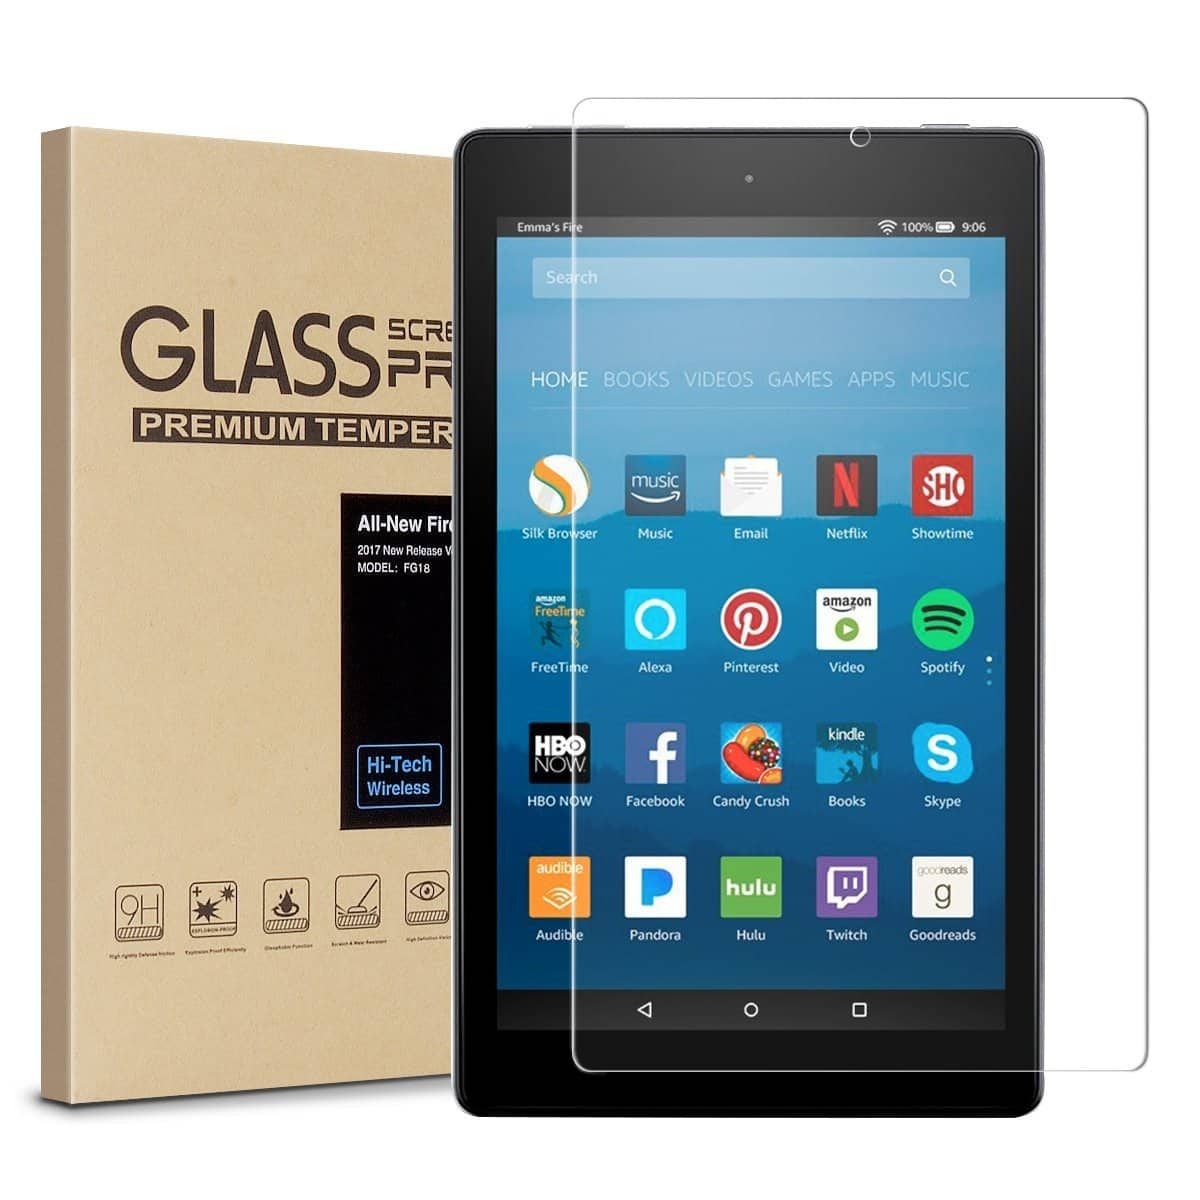 Amazon Fire HD 8 Screen Protector, Tempered Glass Screen Protector, 9H Hardness, Crystal Clear, Bubble Free, Anti-Glare $4.99